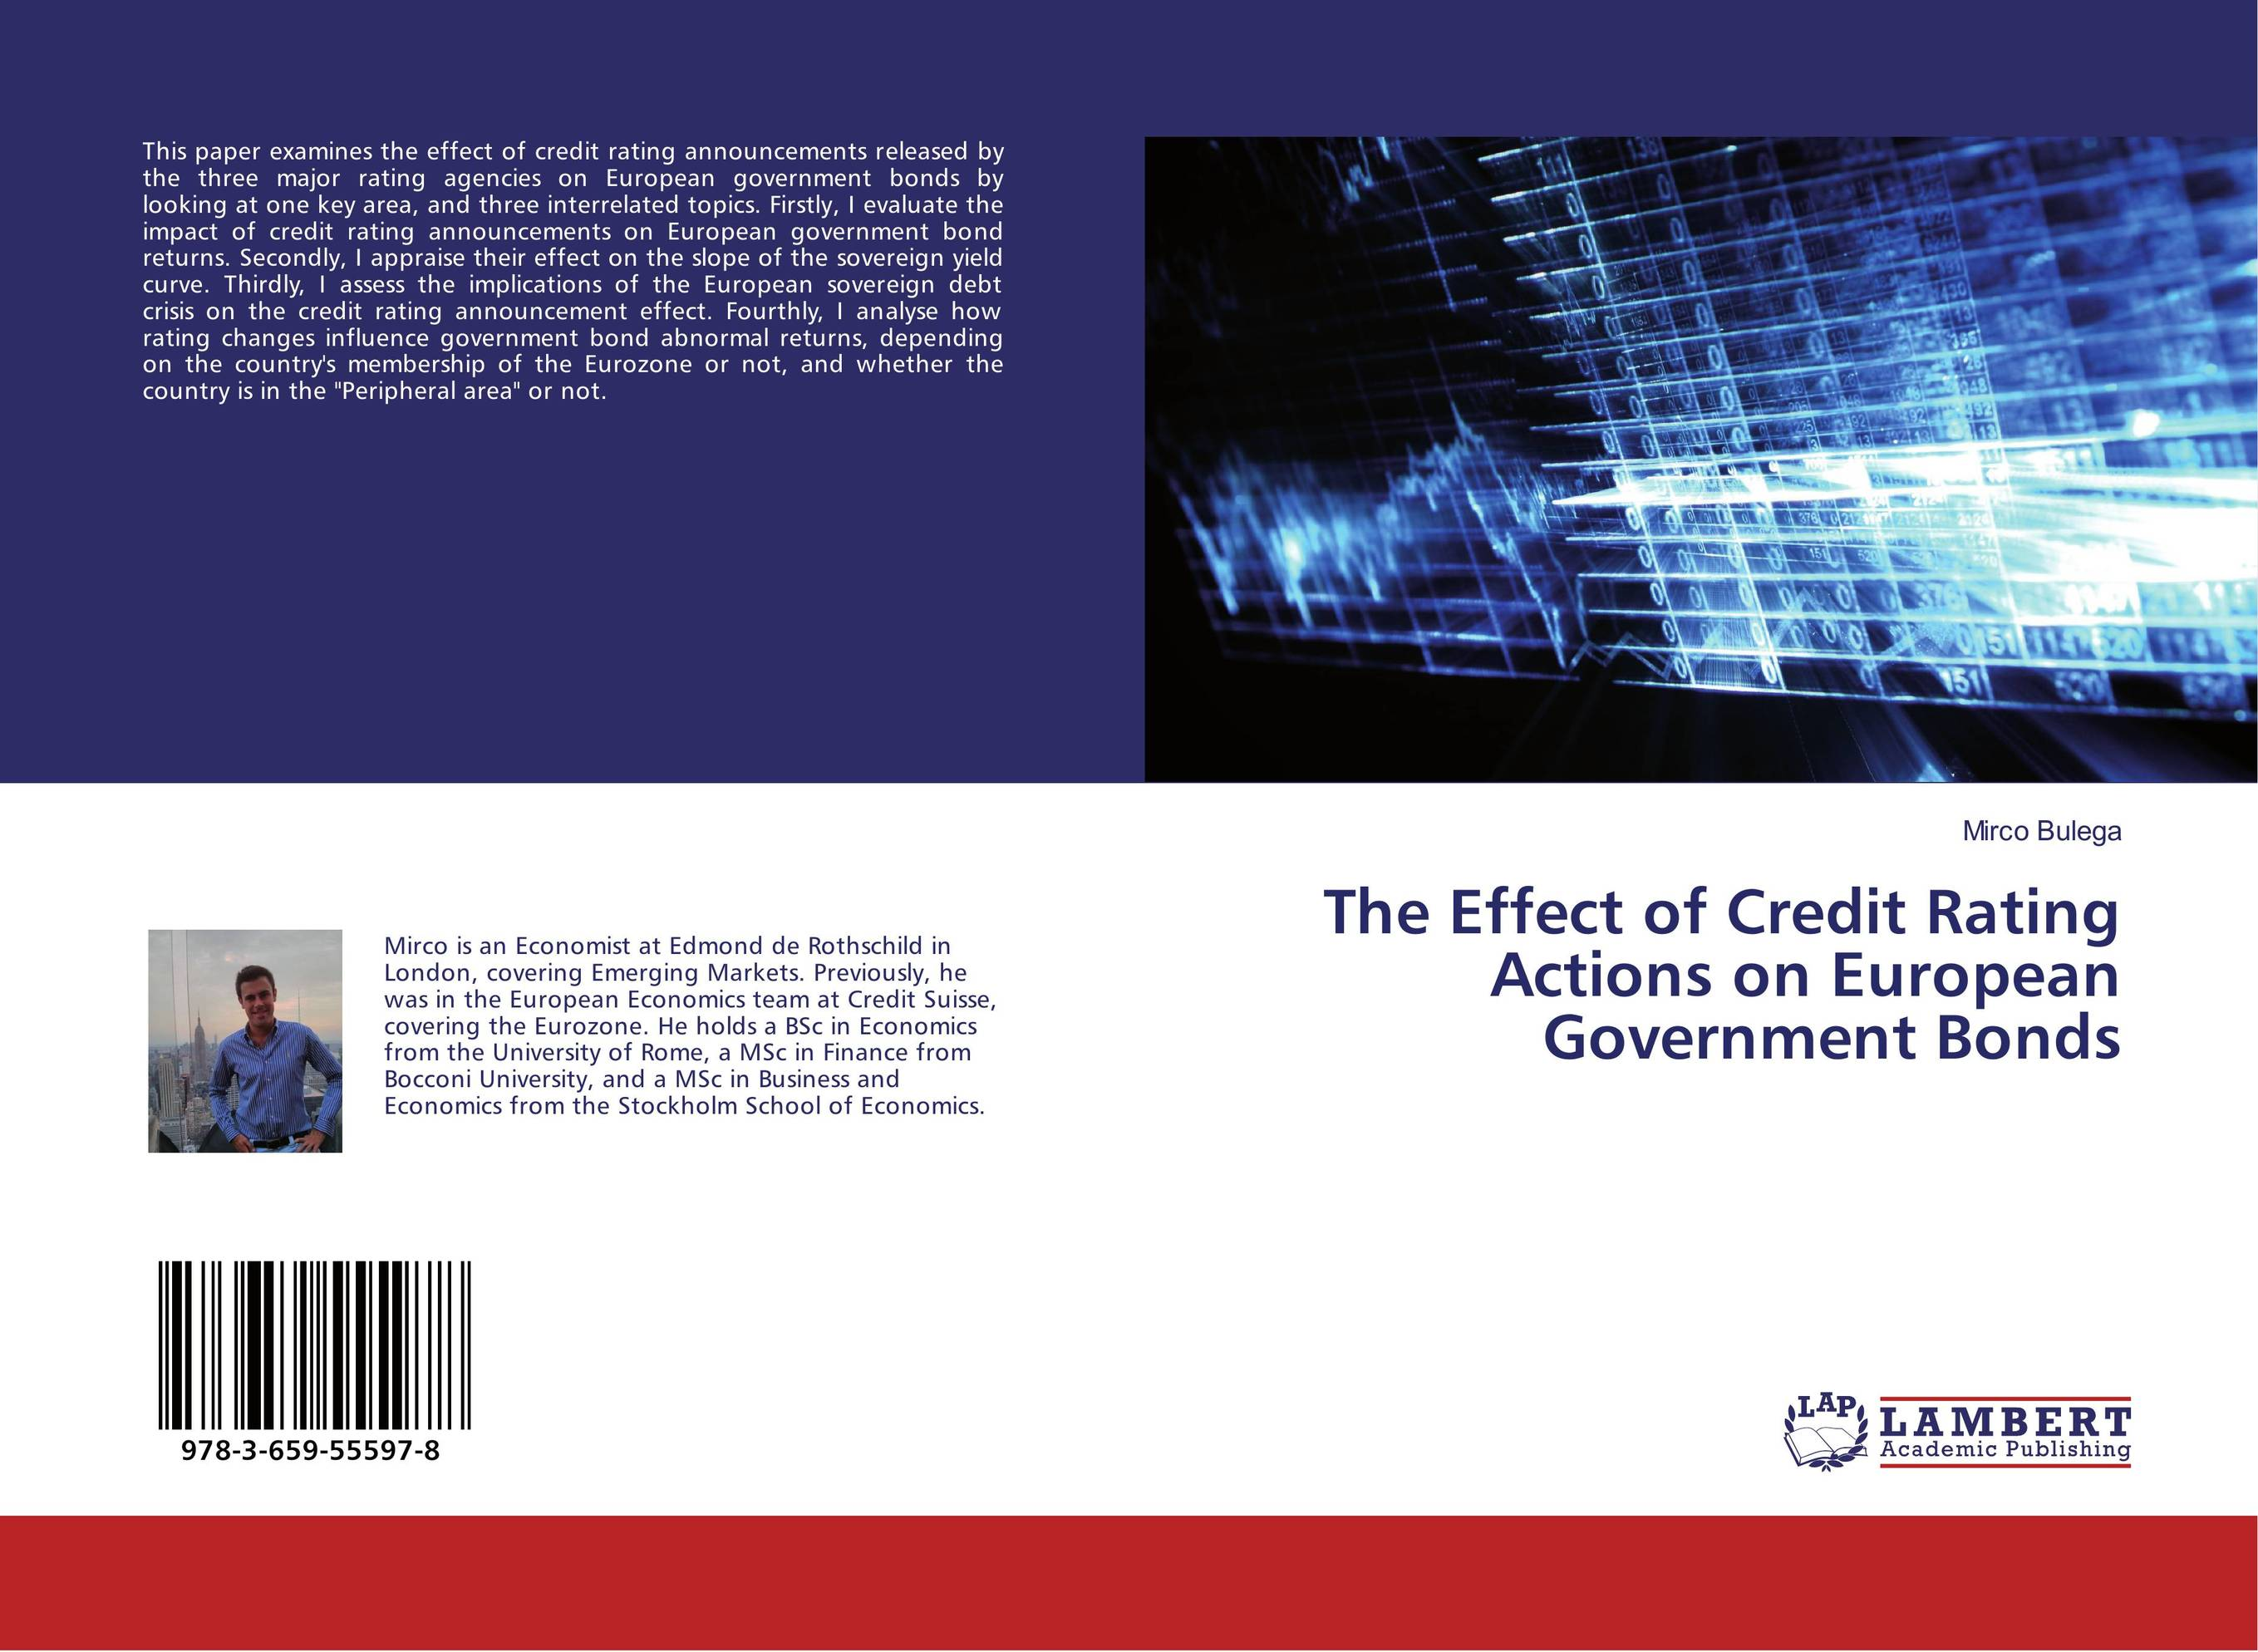 The Effect of Credit Rating Actions on European Government Bonds